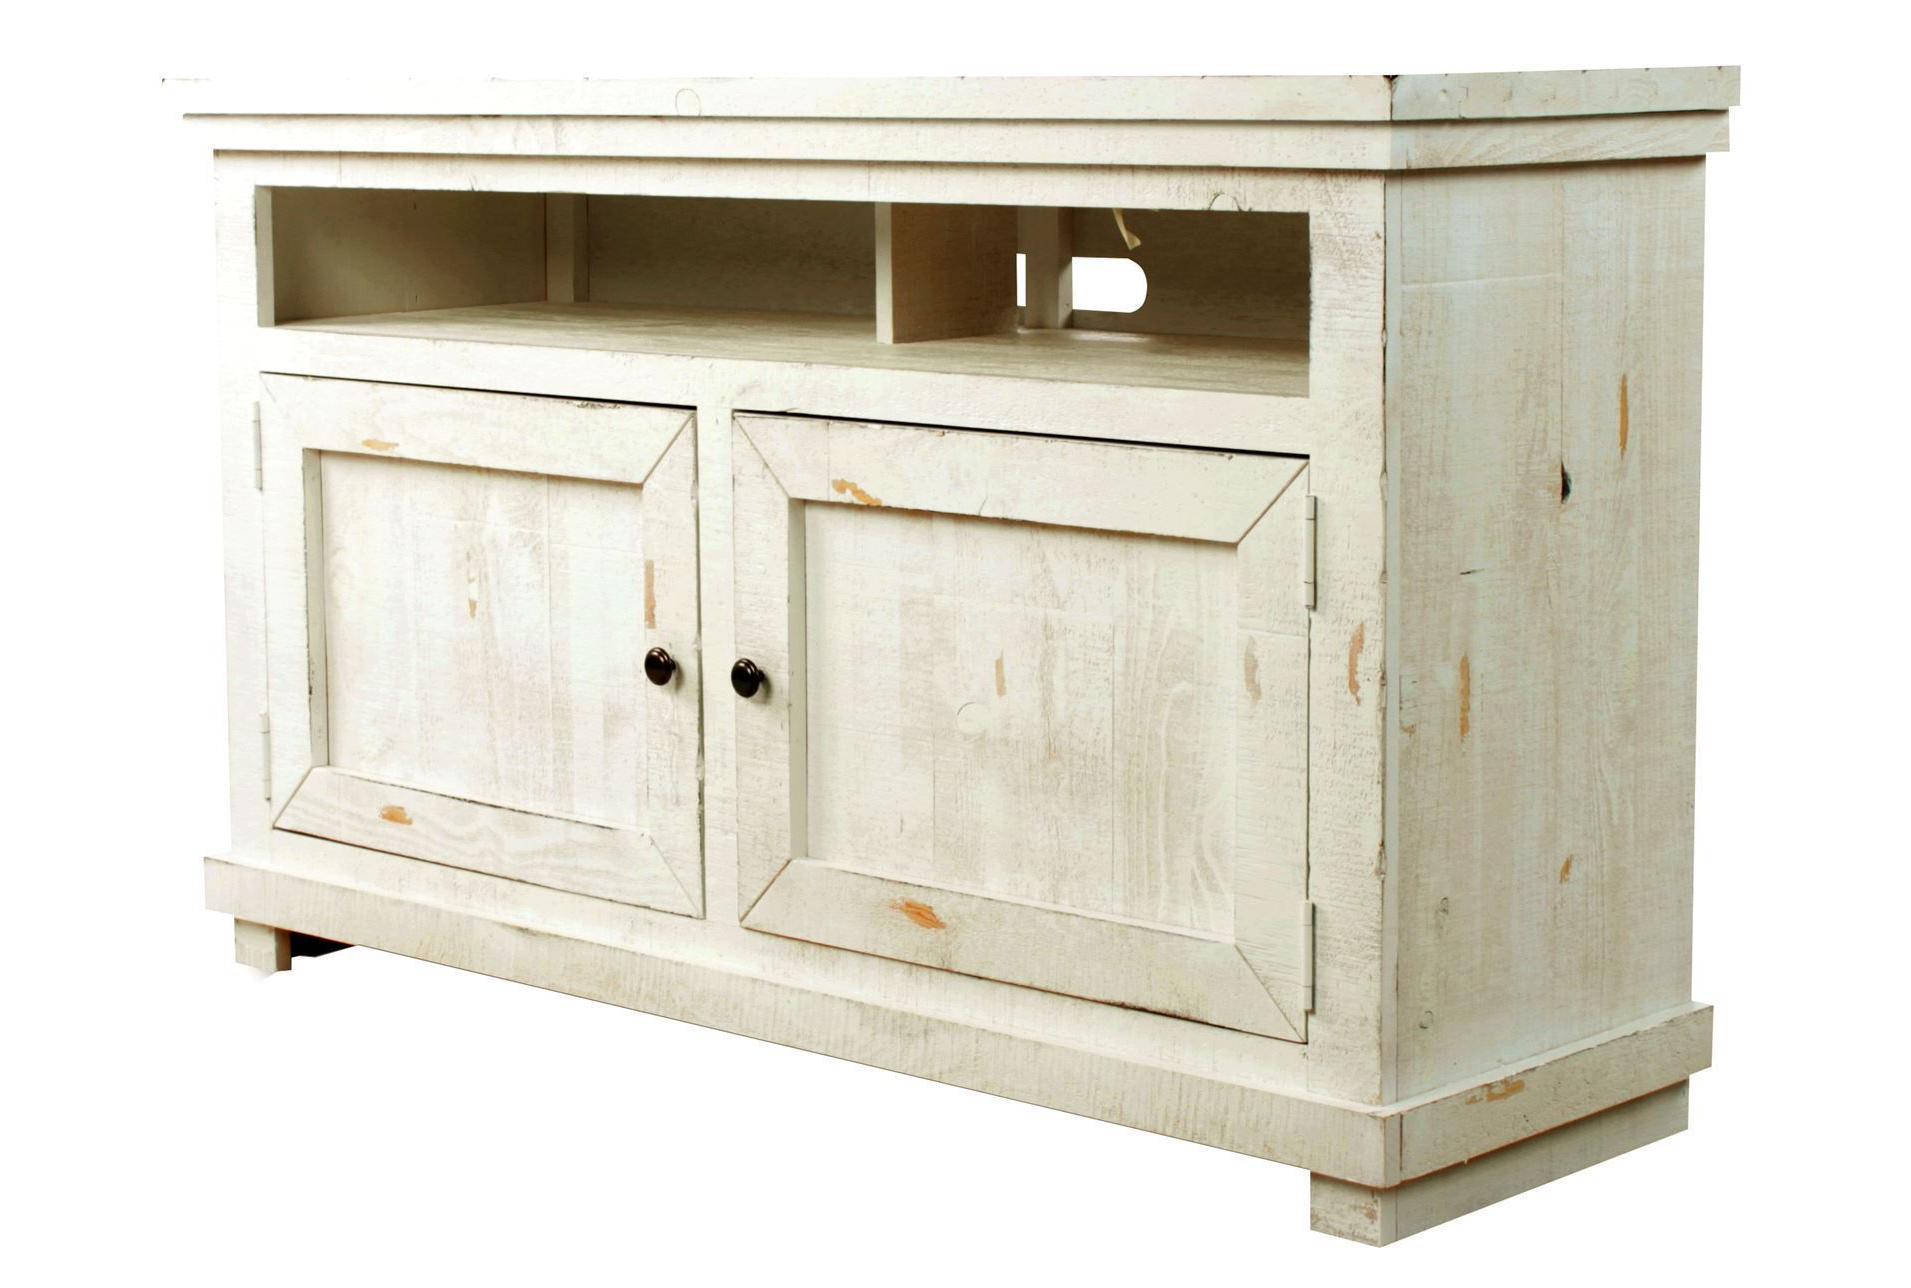 54 Inch Tv Stand, Sinclair White, Weathered White | Consoles, Tv Inside Sinclair White 64 Inch Tv Stands (View 5 of 20)